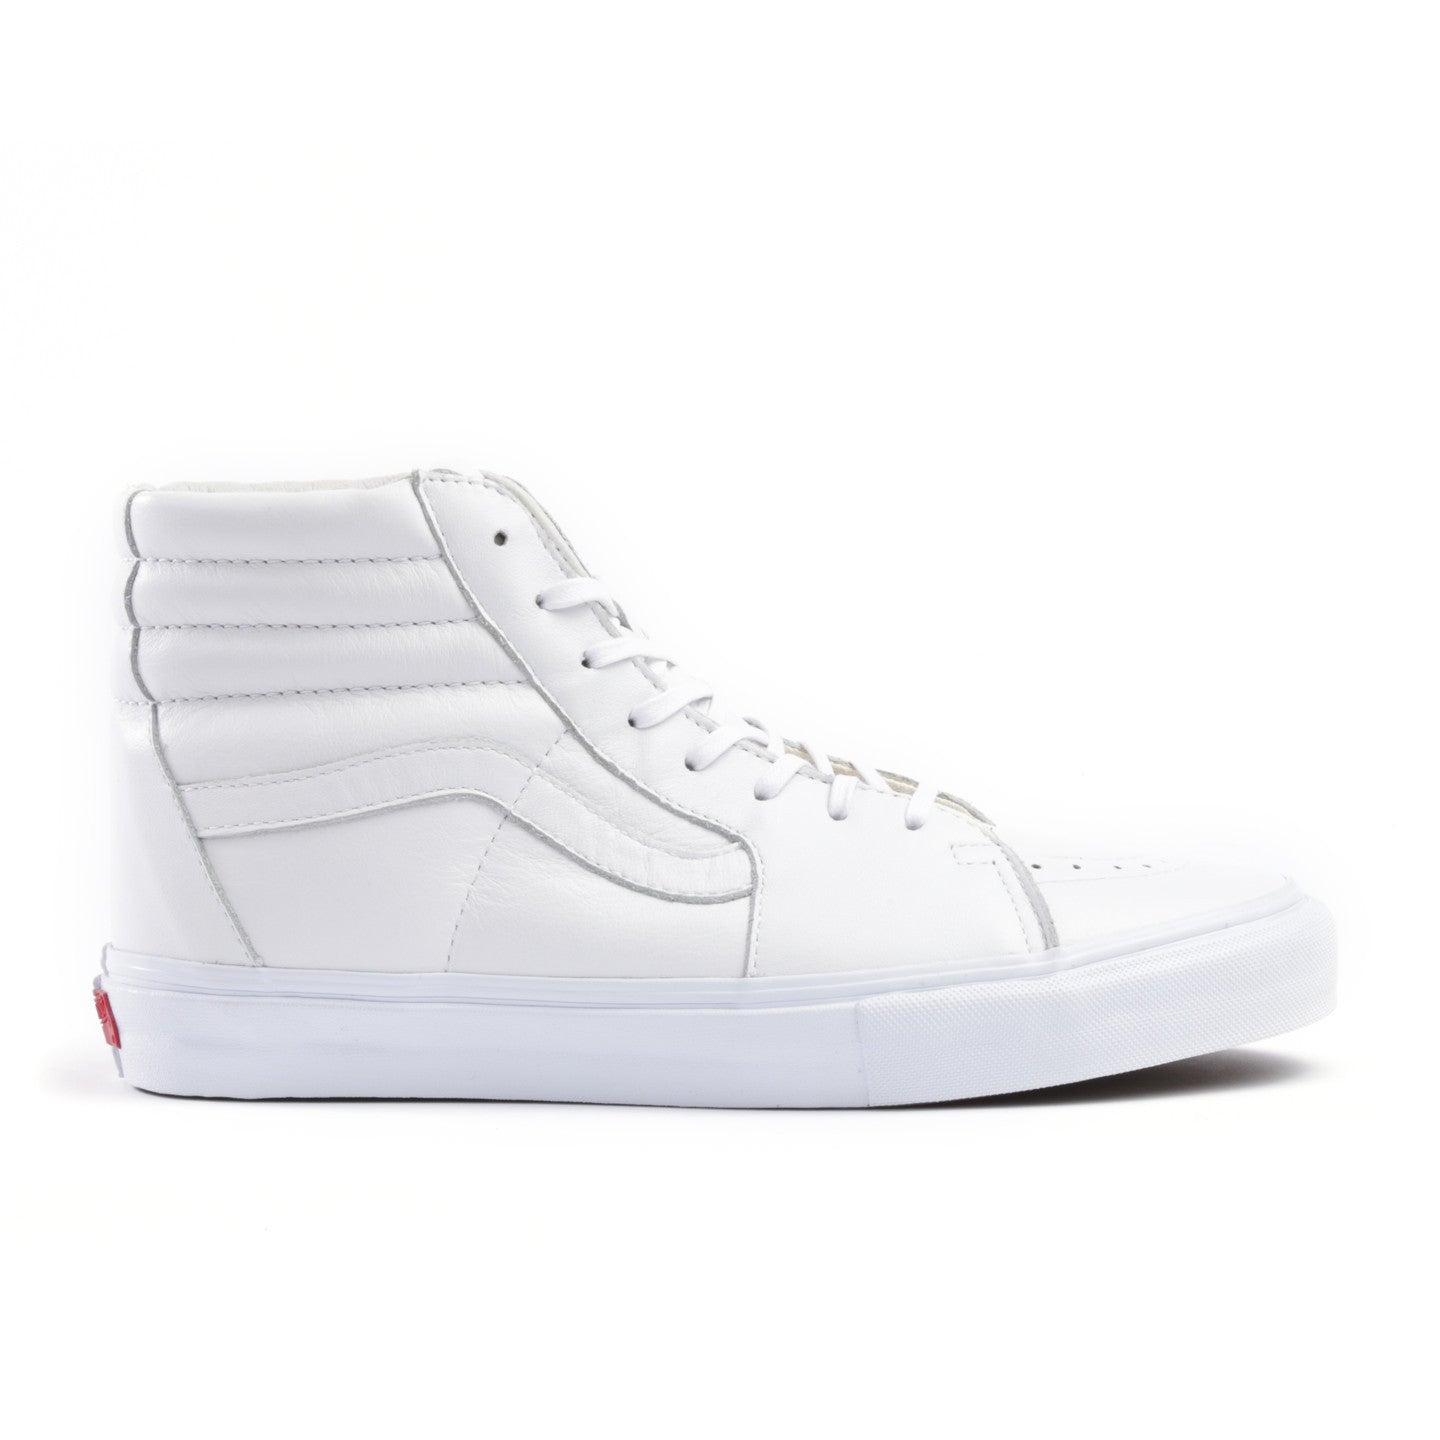 VAULT BY VANS SK8-HI LX WHITE LEATHER